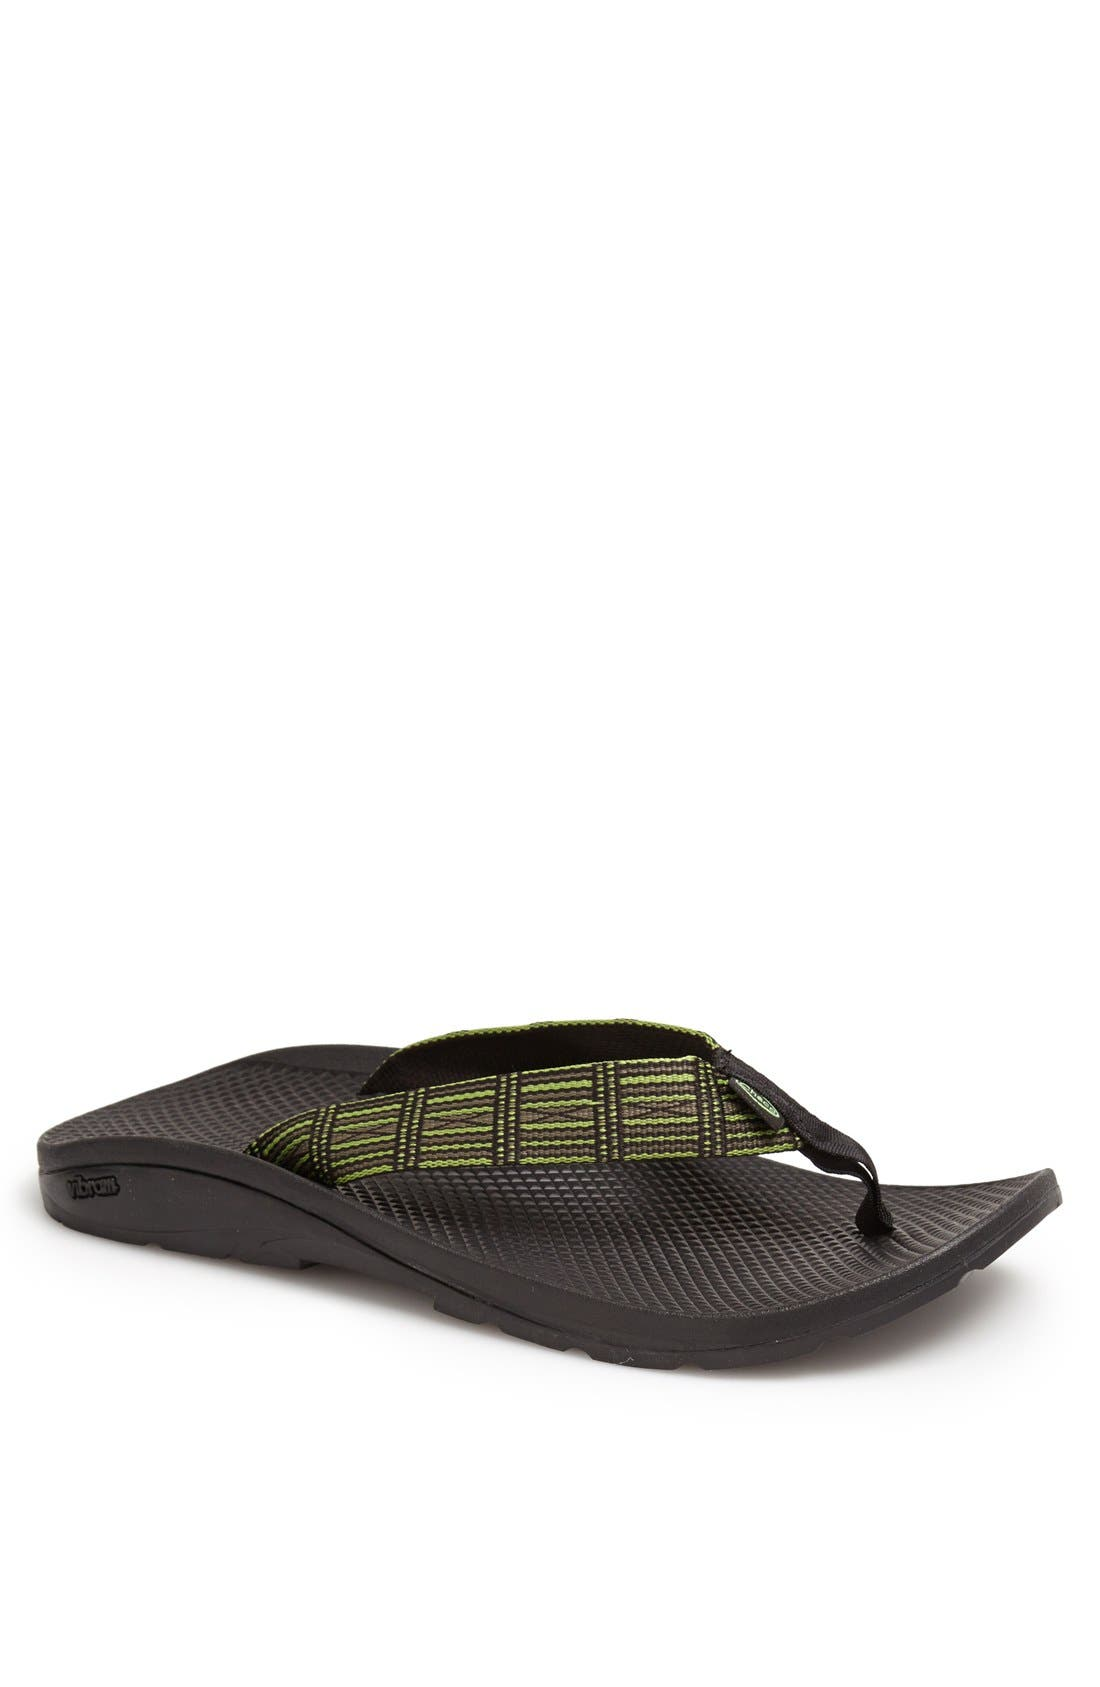 Alternate Image 1 Selected - Chaco 'Flip Vibe' Flip Flop (Men)